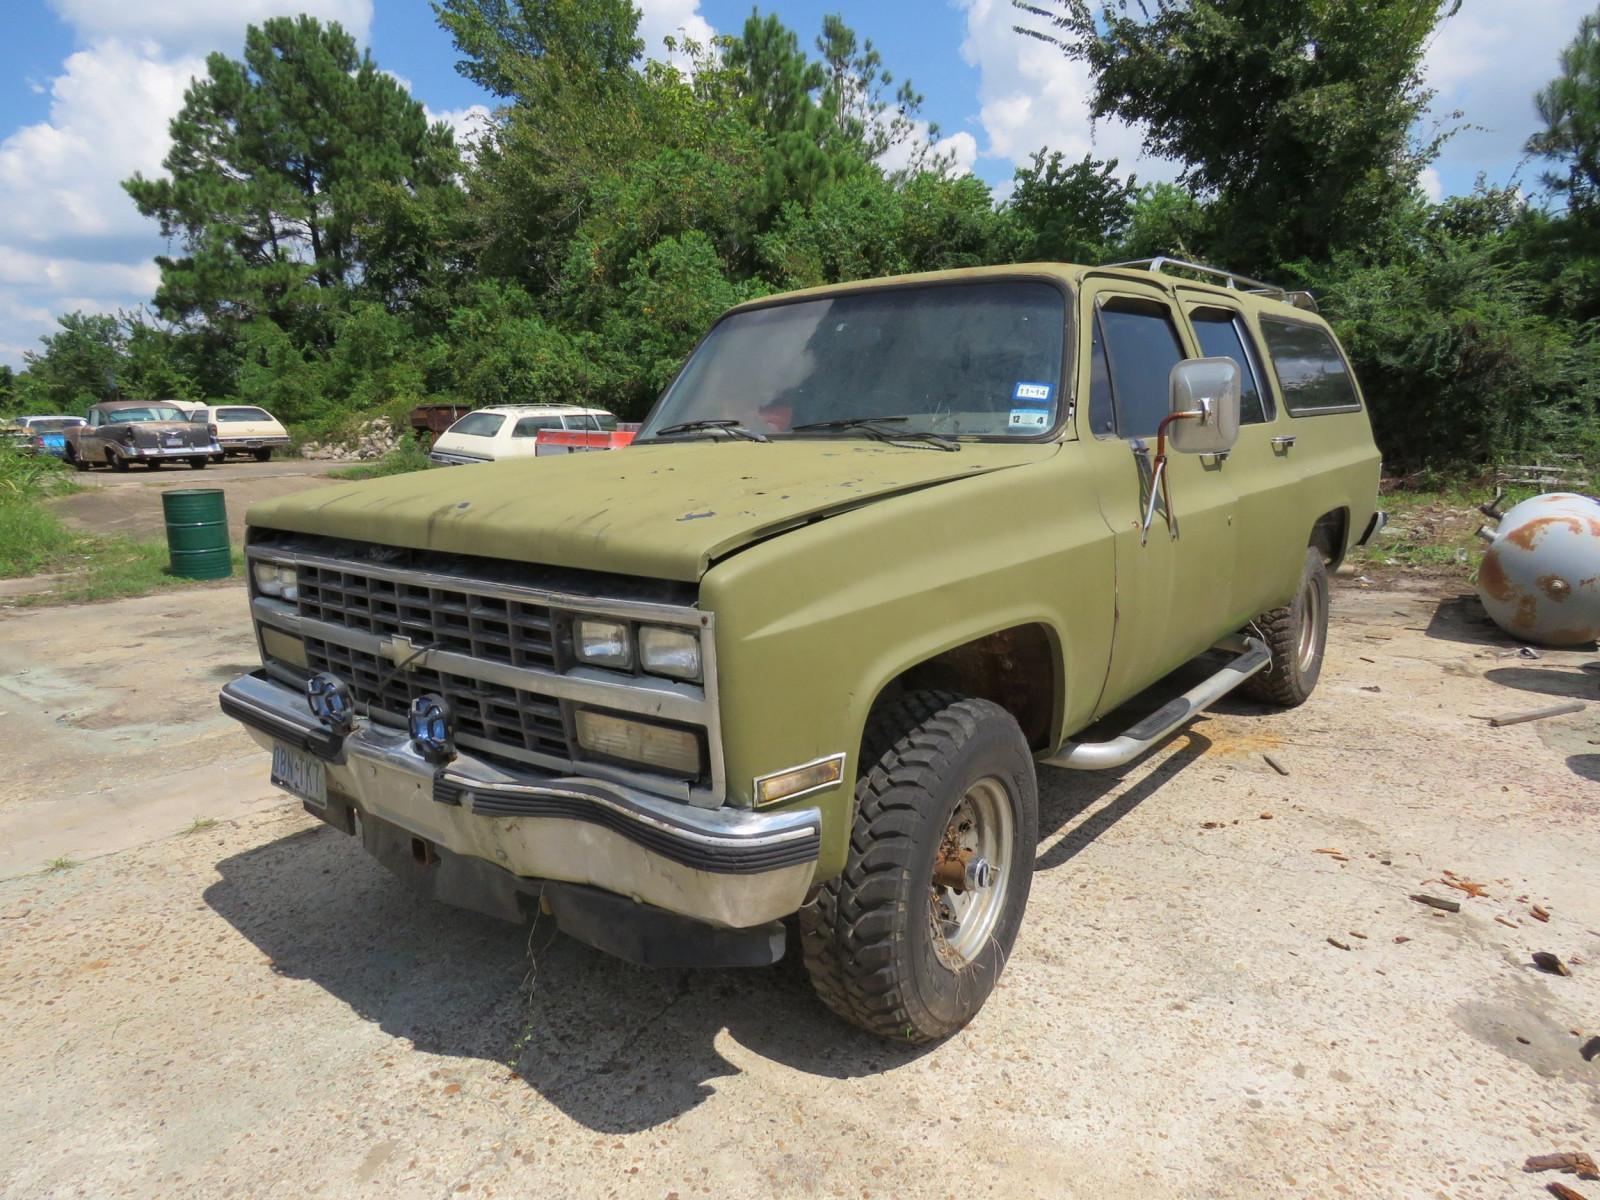 1990 Chevrolet Suburban 4x4 Project - Image 1